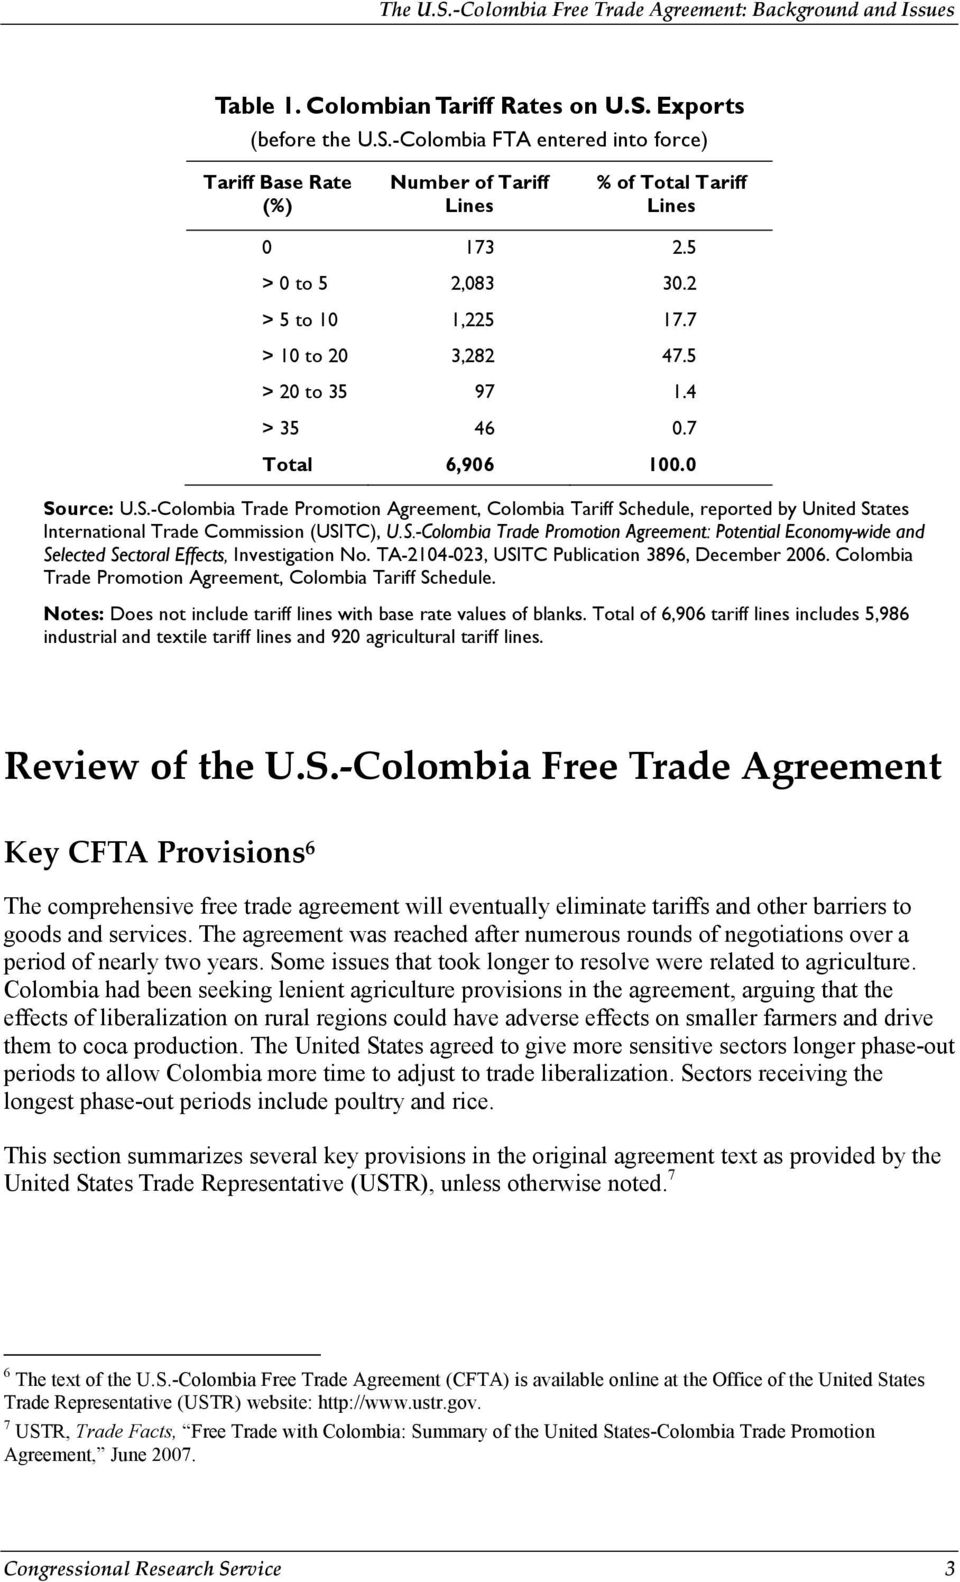 urce: U.S.-Colombia Trade Promotion Agreement, Colombia Tariff Schedule, reported by United States International Trade Commission (USITC), U.S.-Colombia Trade Promotion Agreement: Potential Economy-wide and Selected Sectoral Effects, Investigation No.